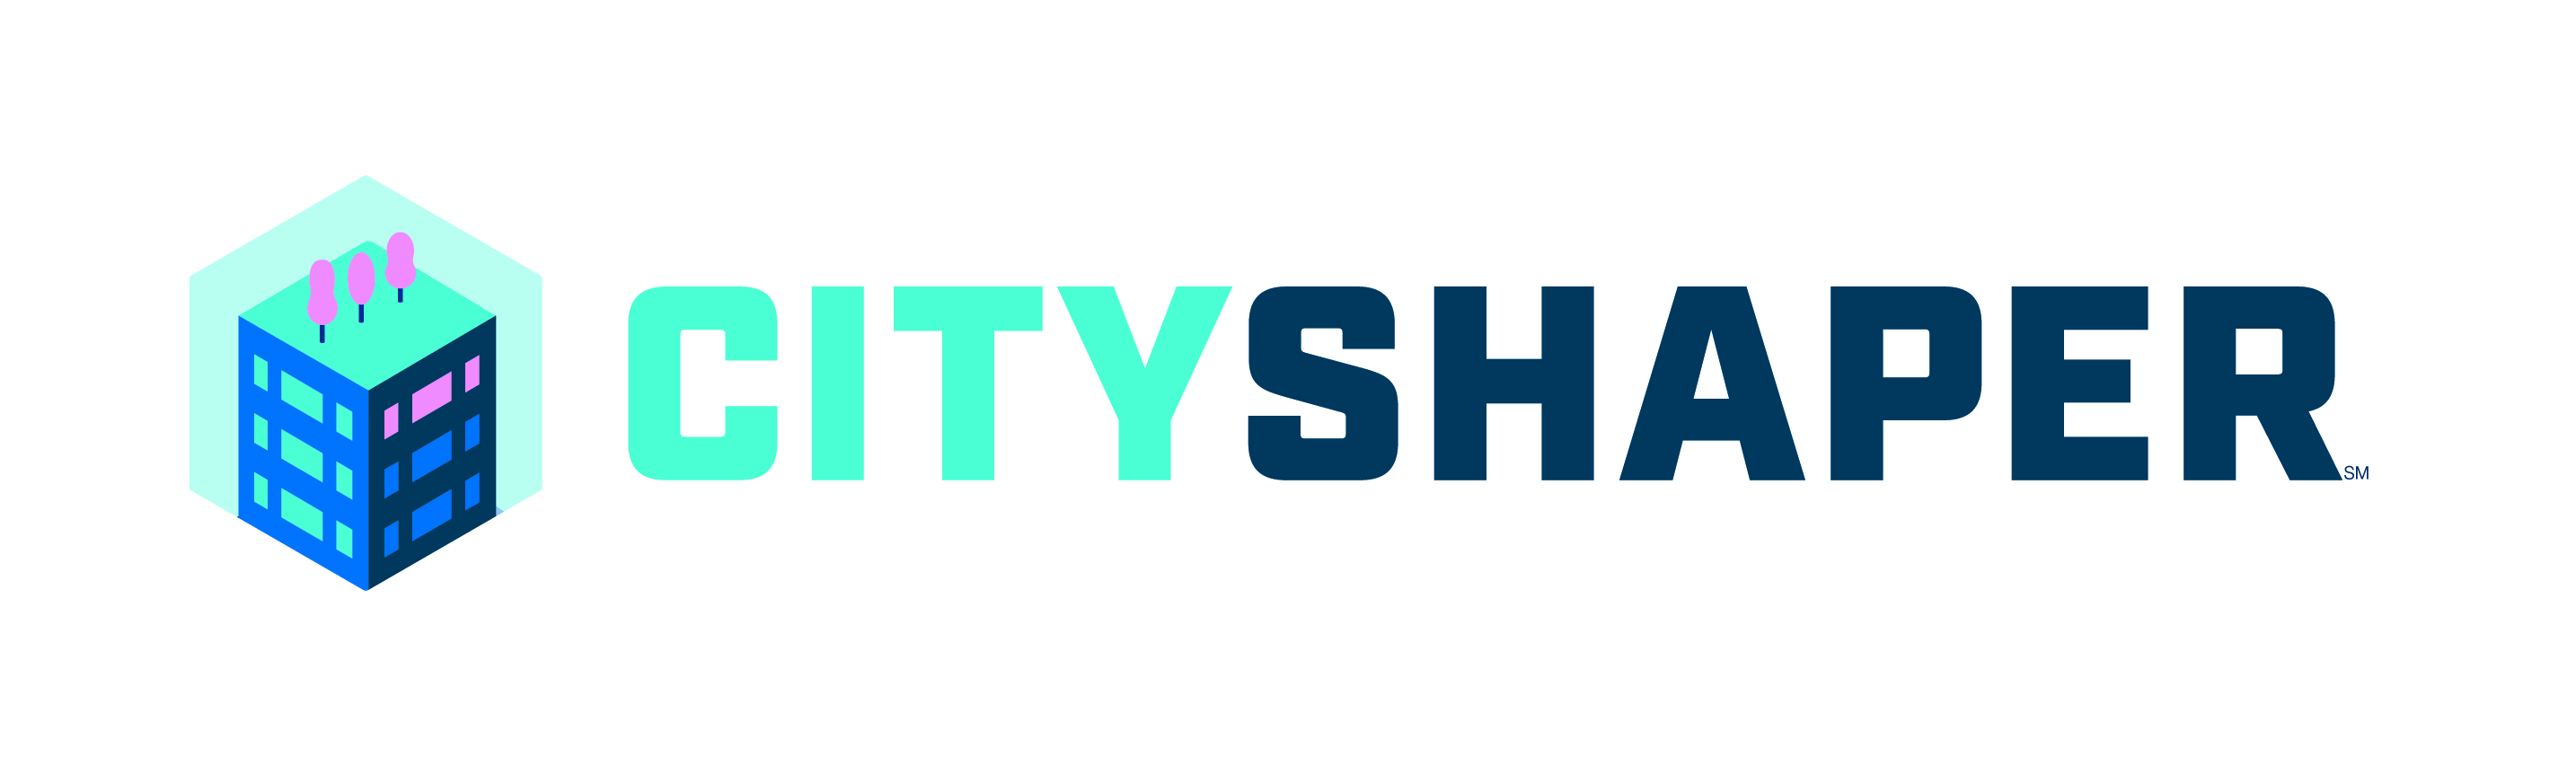 logo for City Shaper challenge